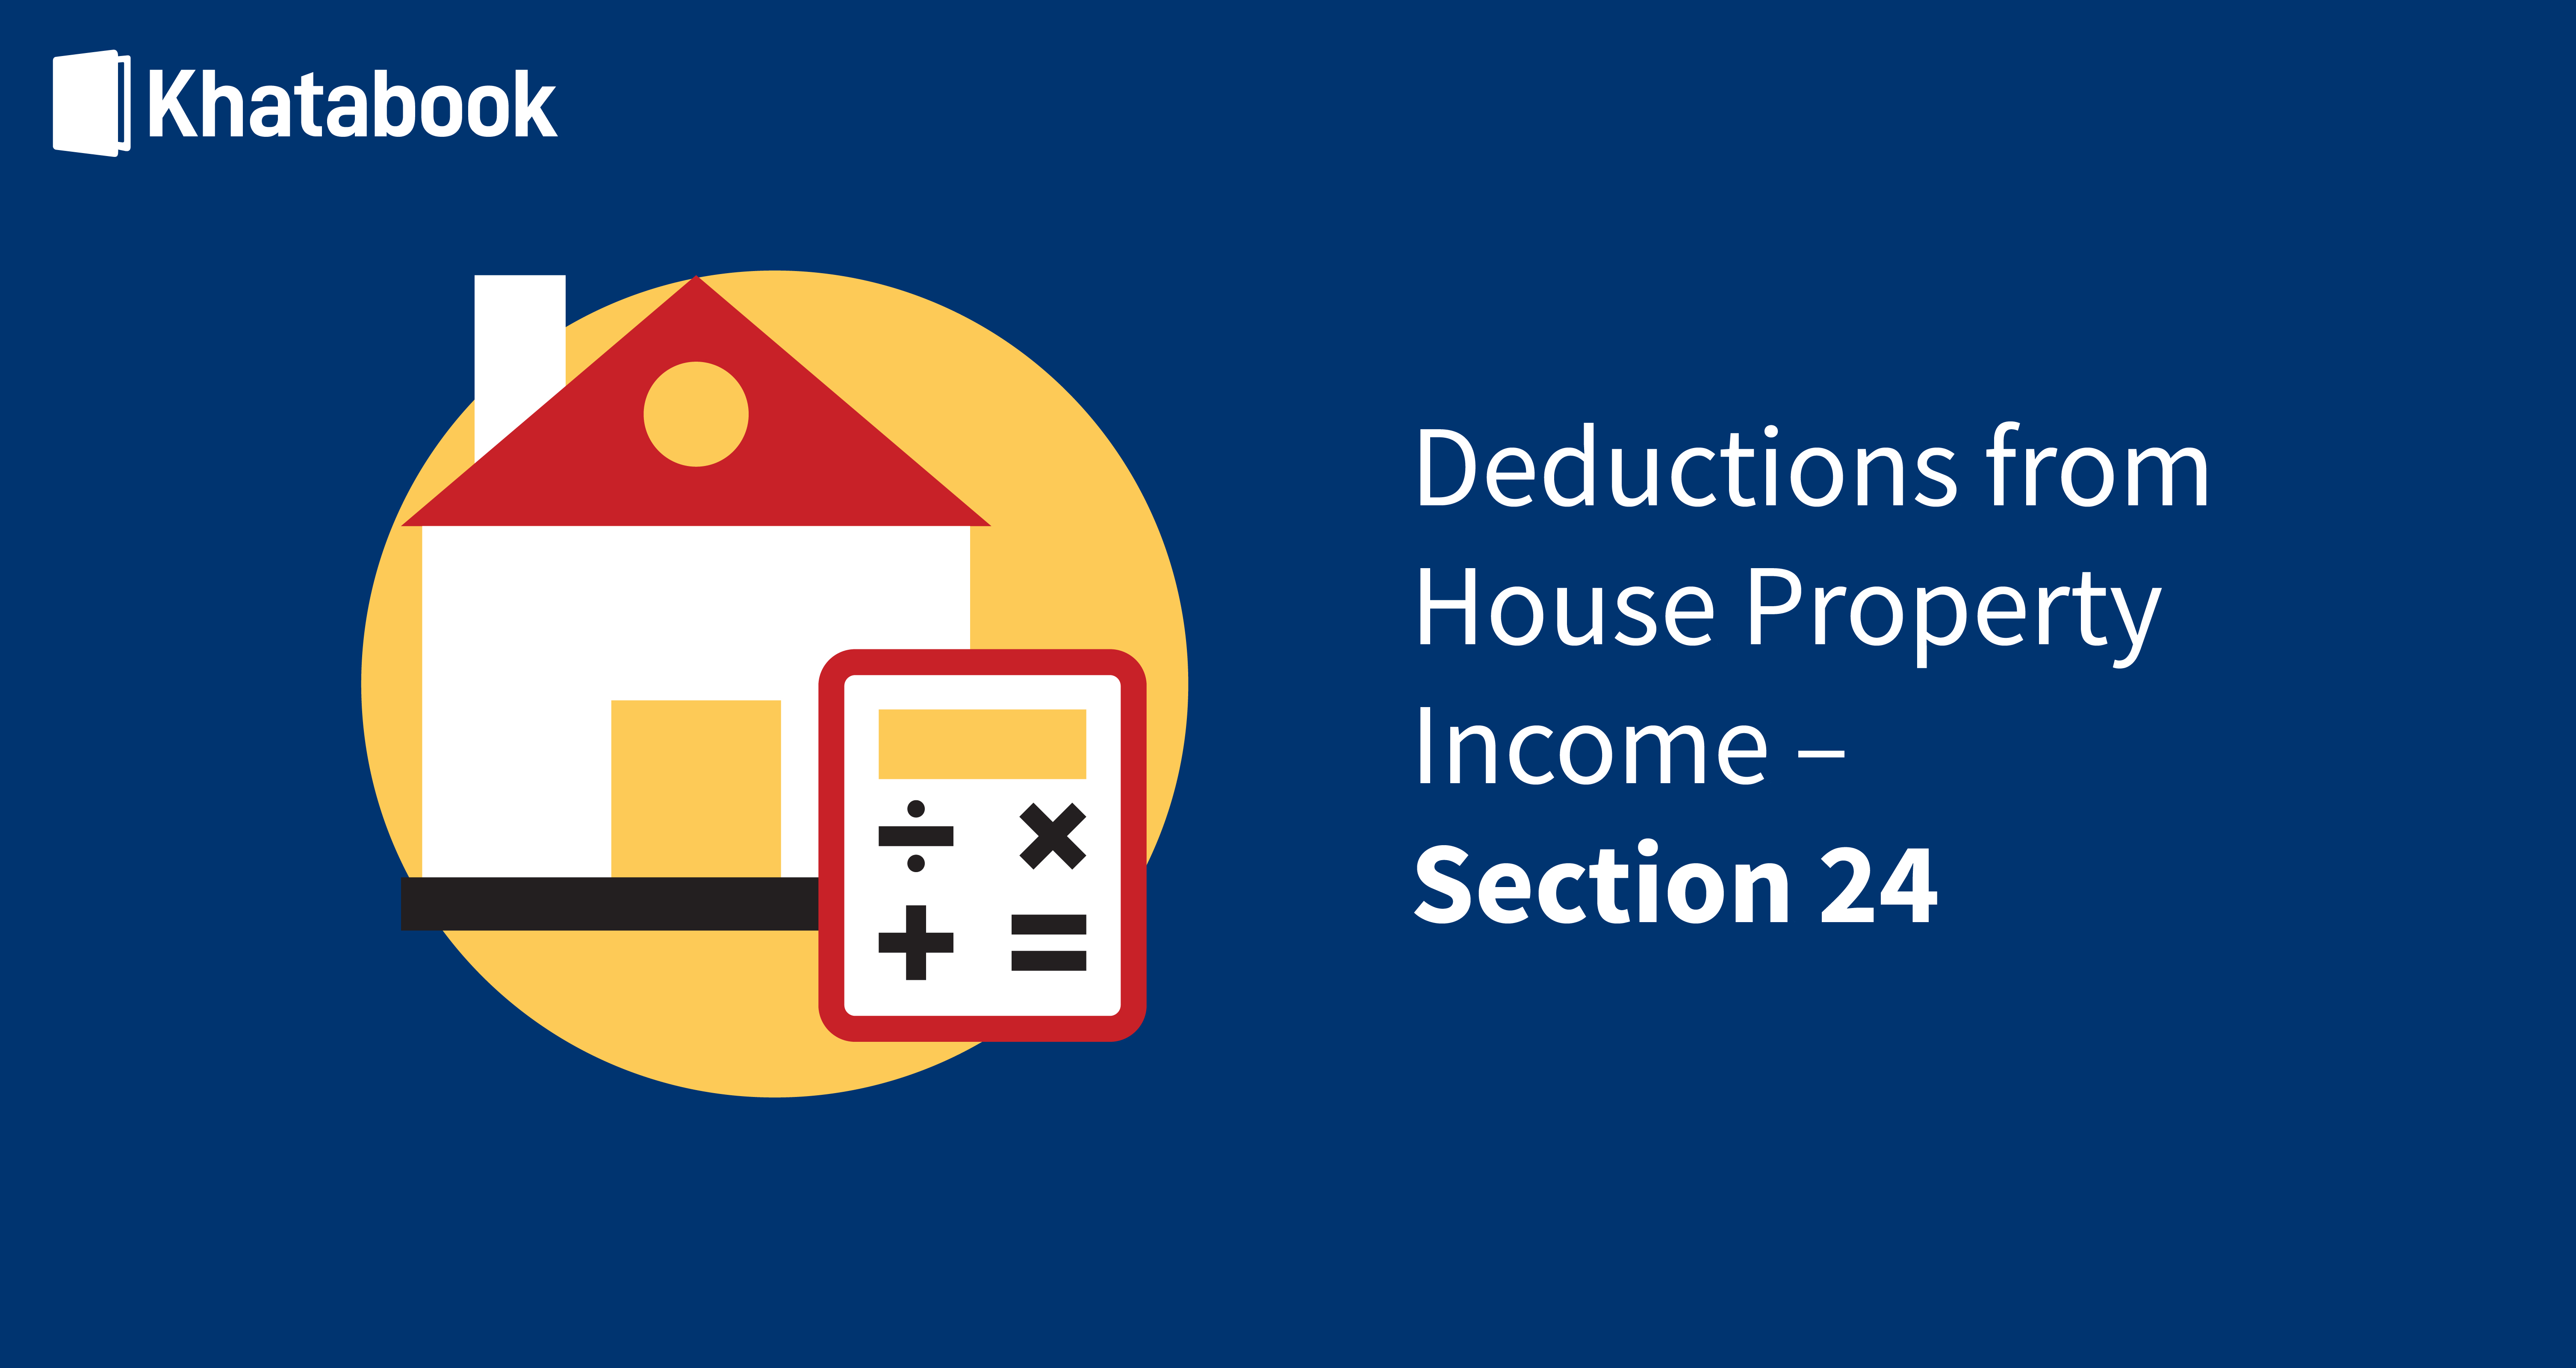 Deductions from House Property Income Section 24